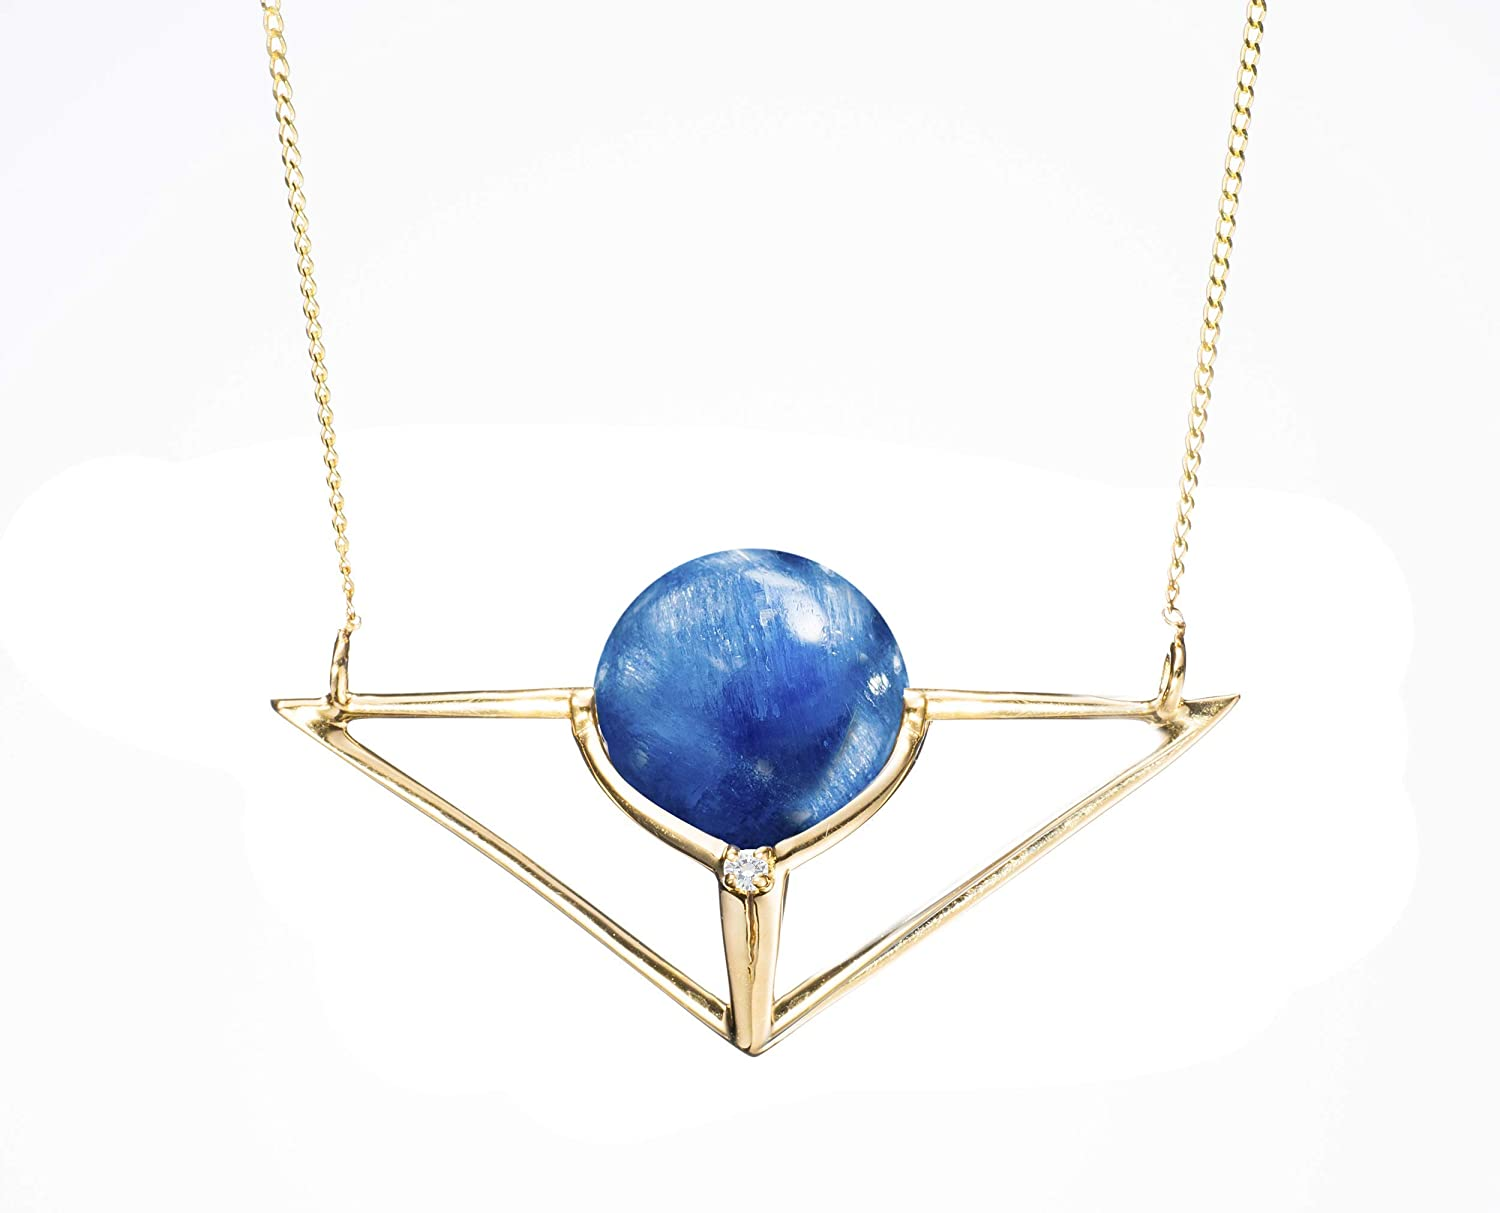 gold metal pendant Blue kyanite stone Jewelry Gold Necklace